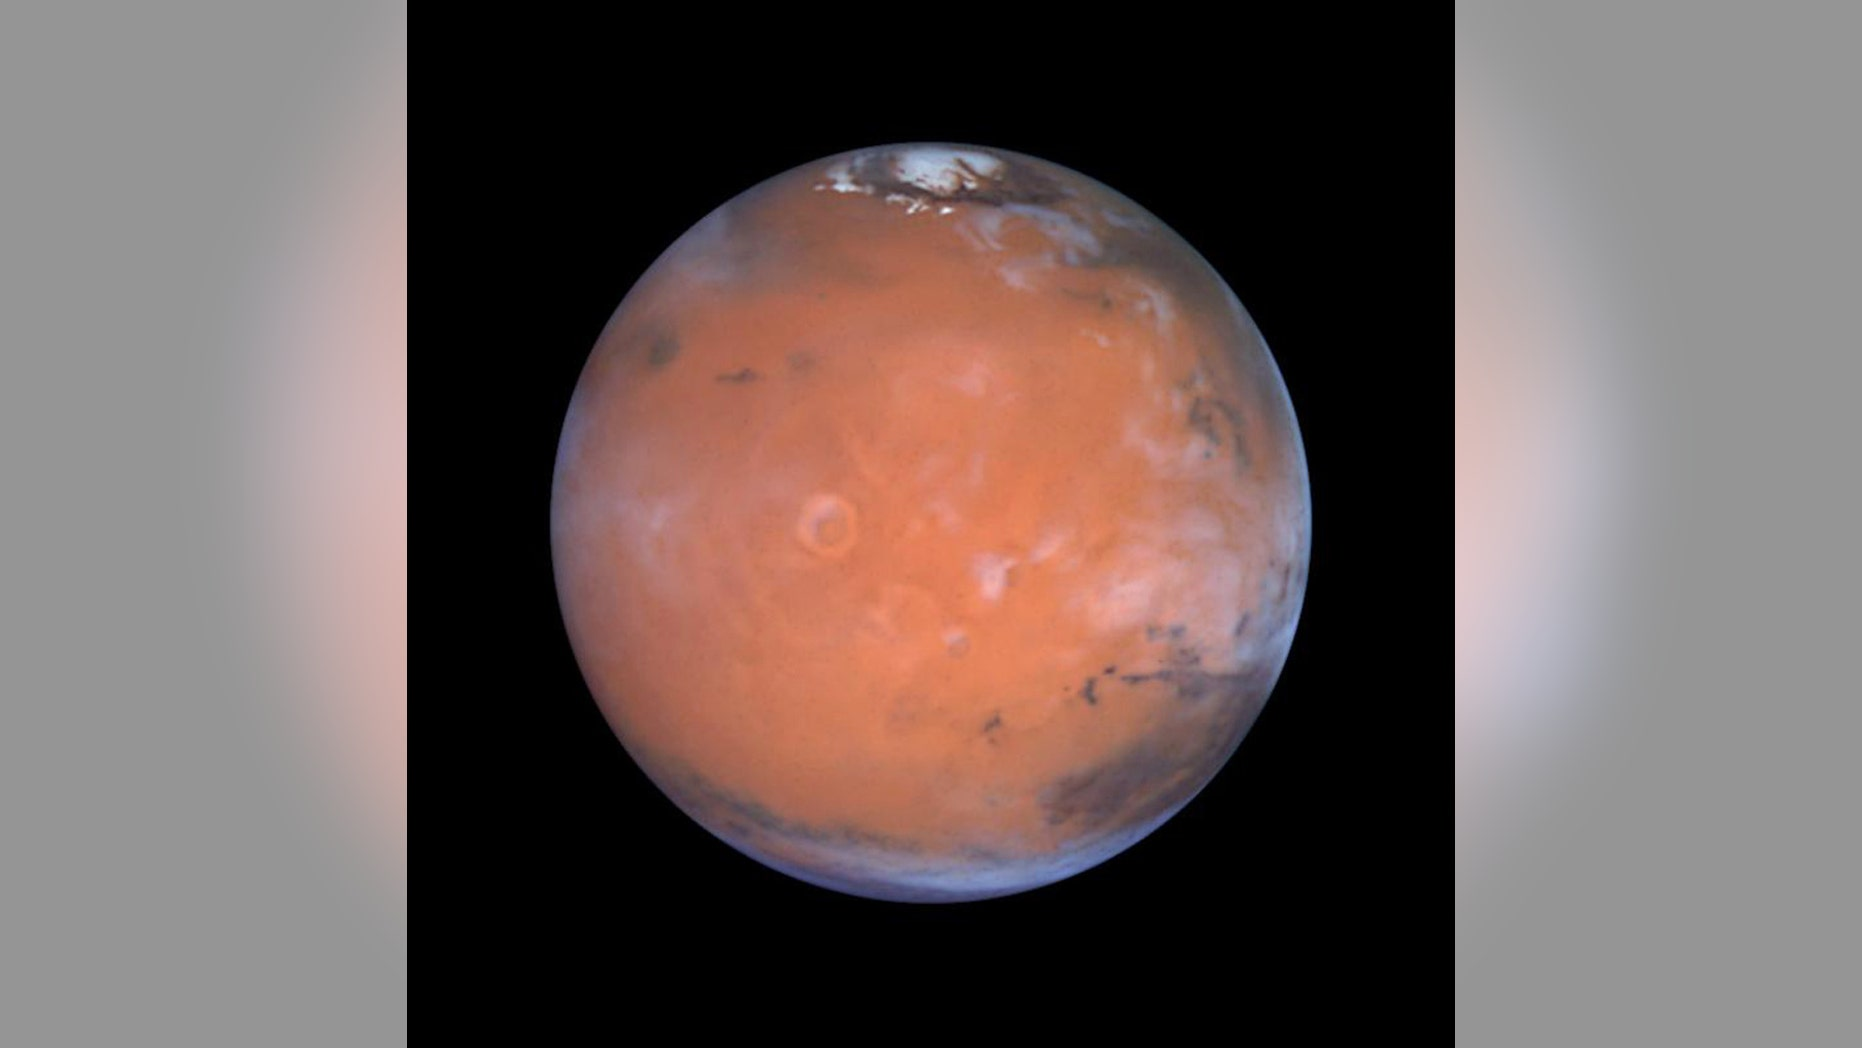 New research into old data suggests that ice may hide around Mars' equator. Here, the Red Planet is seen in a vivid Hubble view.